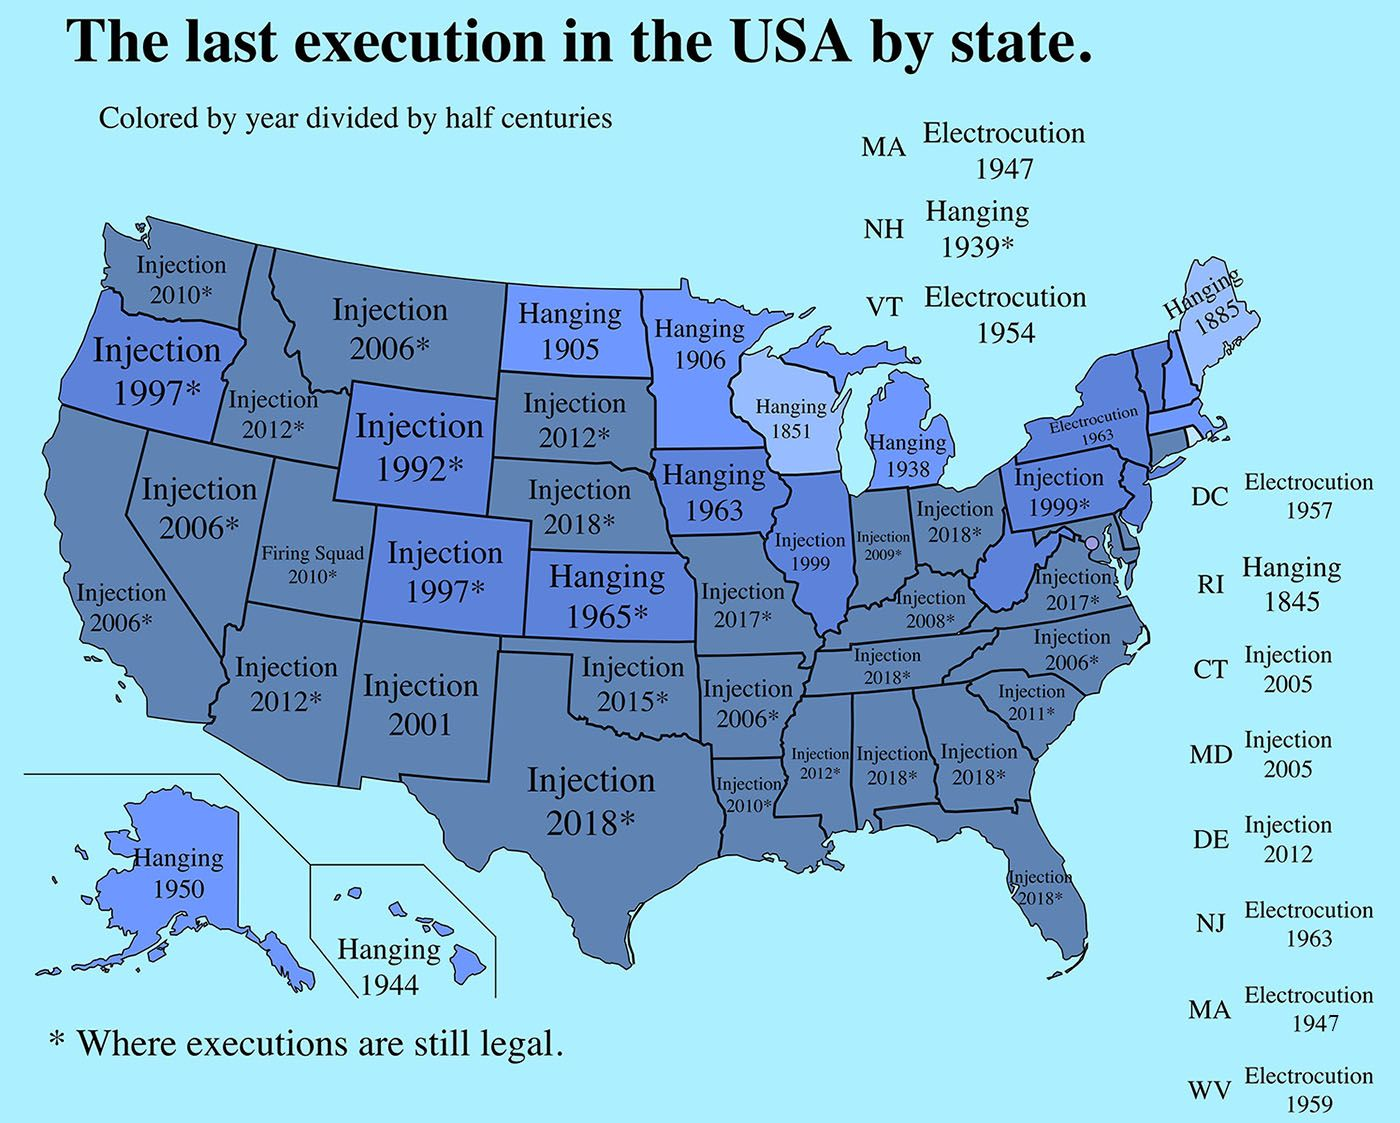 The last execution in the U.S. and Europe by state/country | United ...